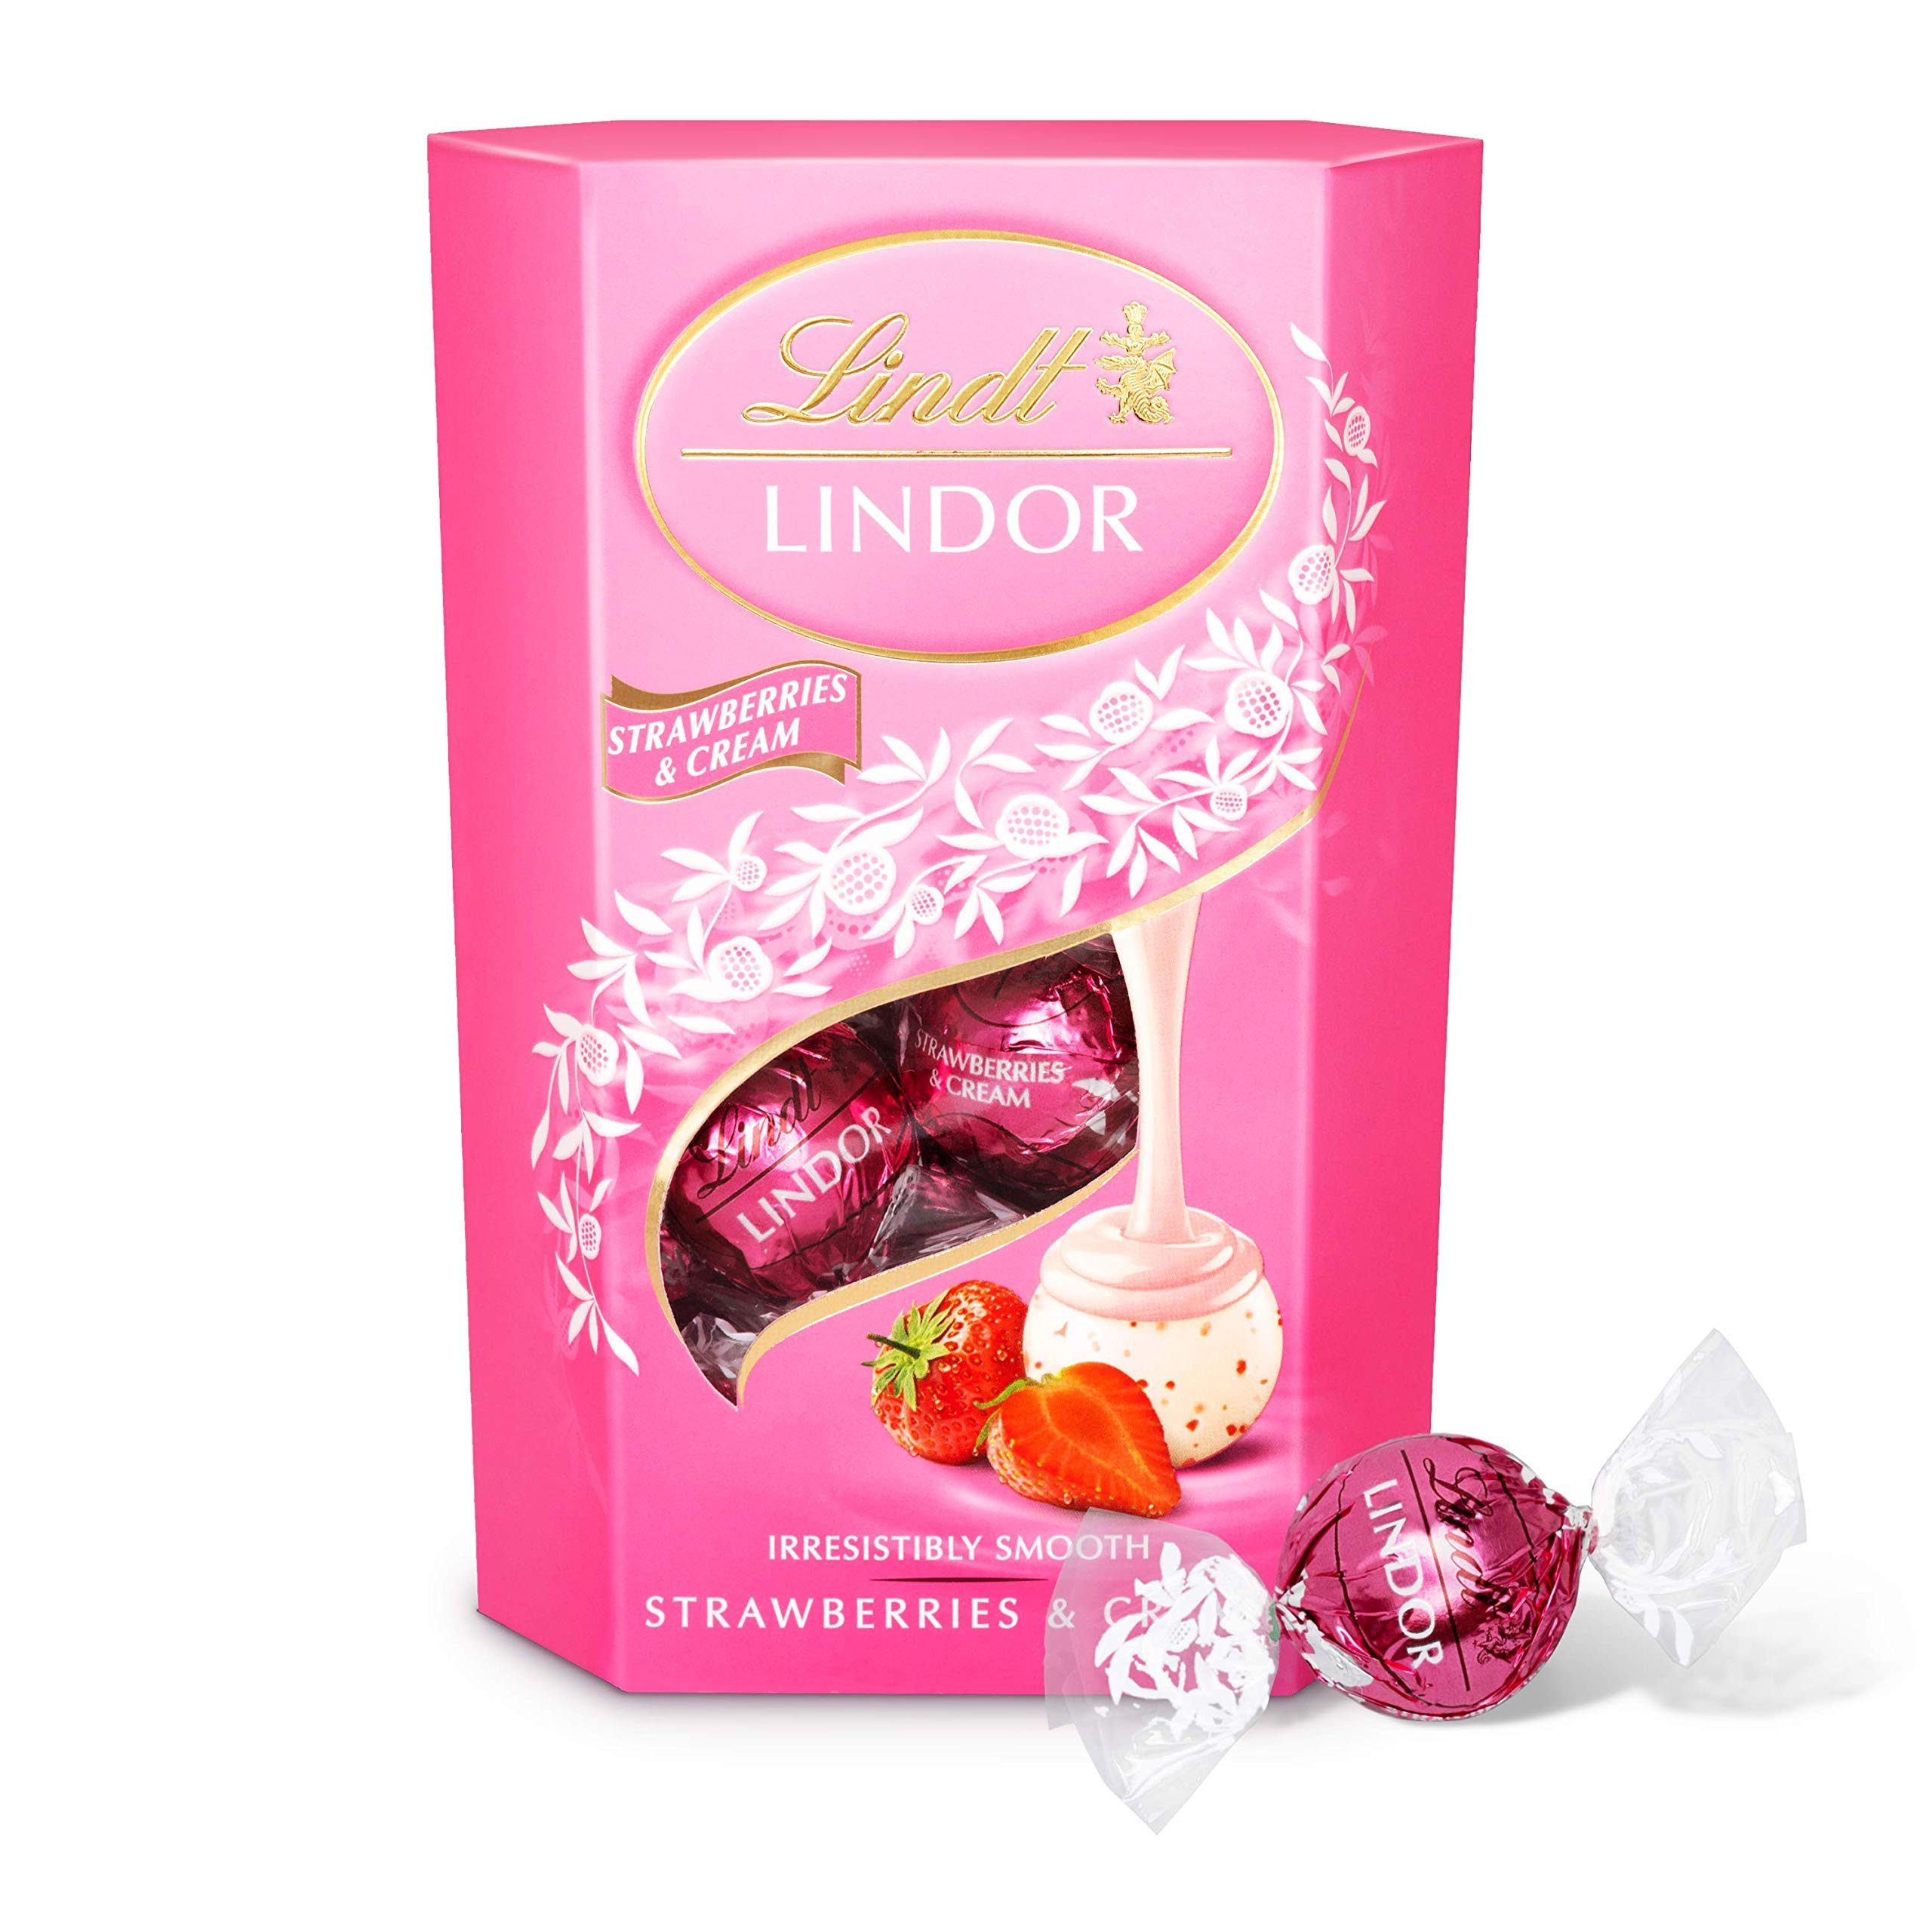 Lindt Lindor Strawberries and Cream Chocolate Truffles Box - Approximately 16 Balls, 200 g - The Ideal Gift - Chocolate Balls with a Smooth Melting Filling